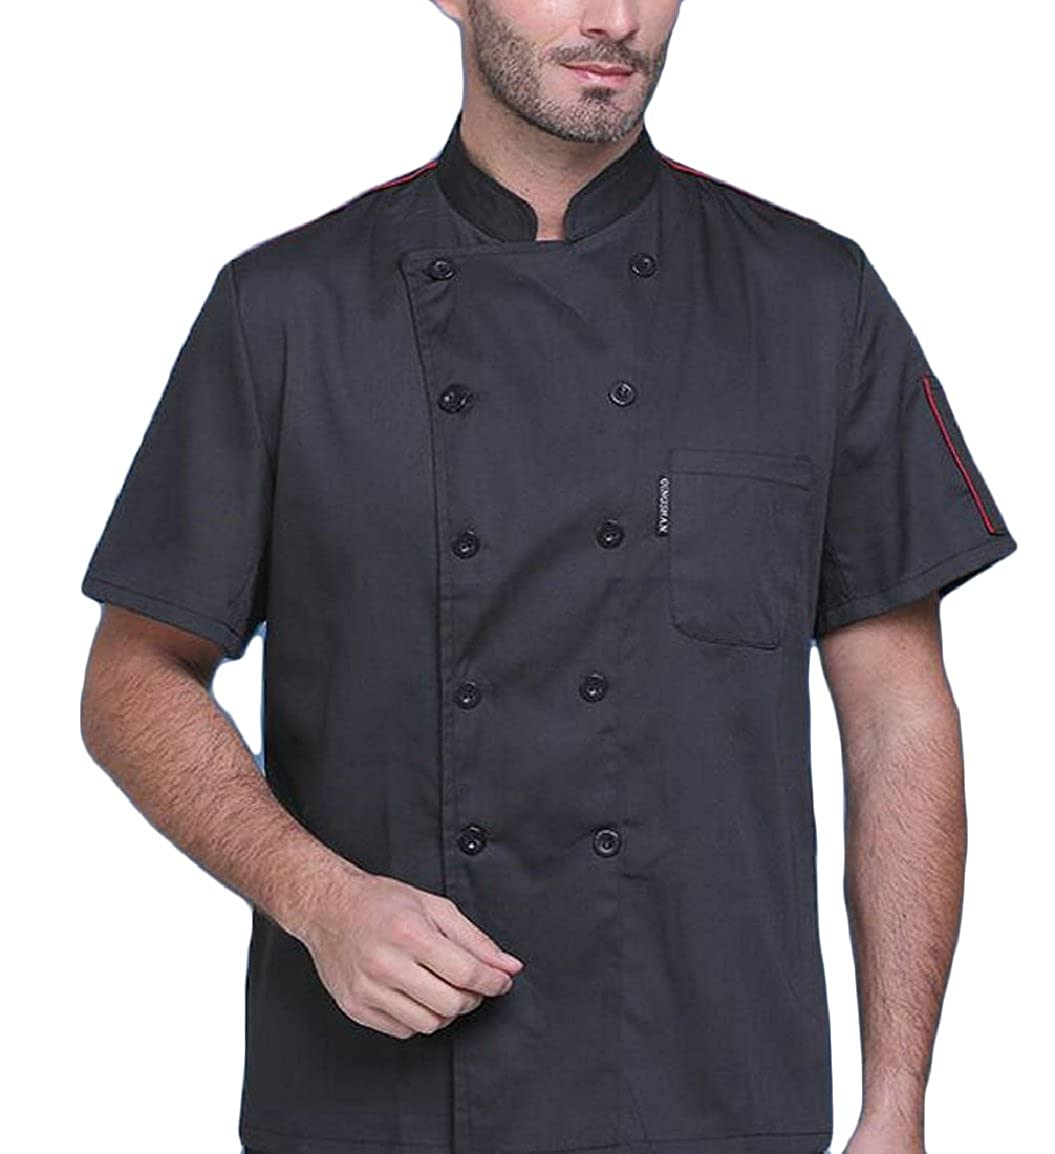 pujingge-CA Men Chef Jacket Short Sleeves Shirt Service Kitchen Uniform